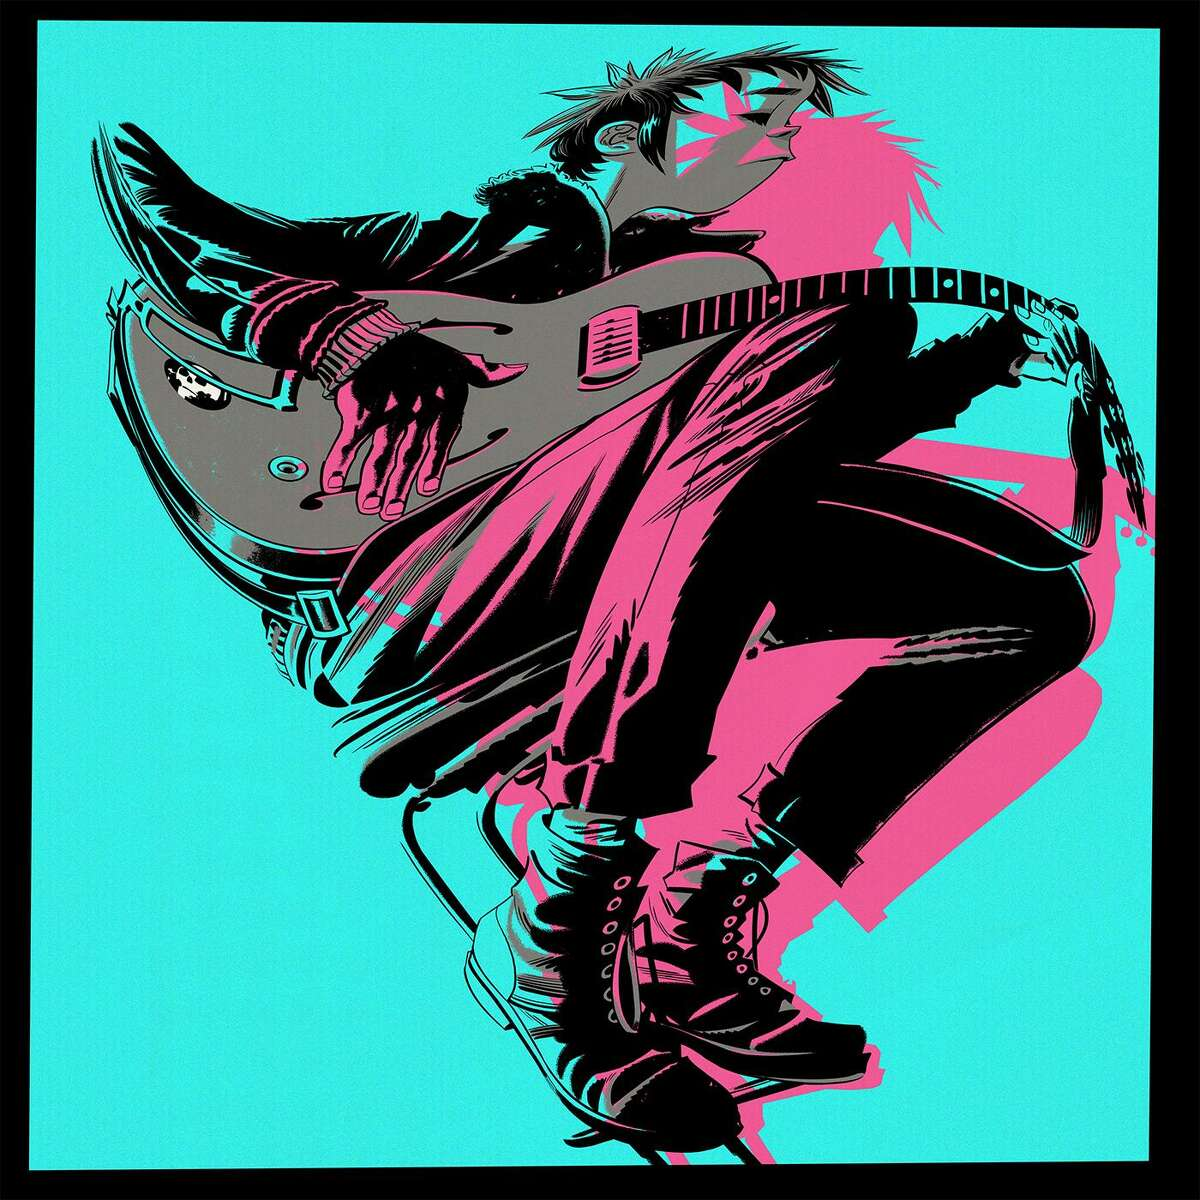 """This cover image released by Warner Bros. shows """"The Now Now,"""" a release by Gorillaz. (Warner Bros. via AP)"""